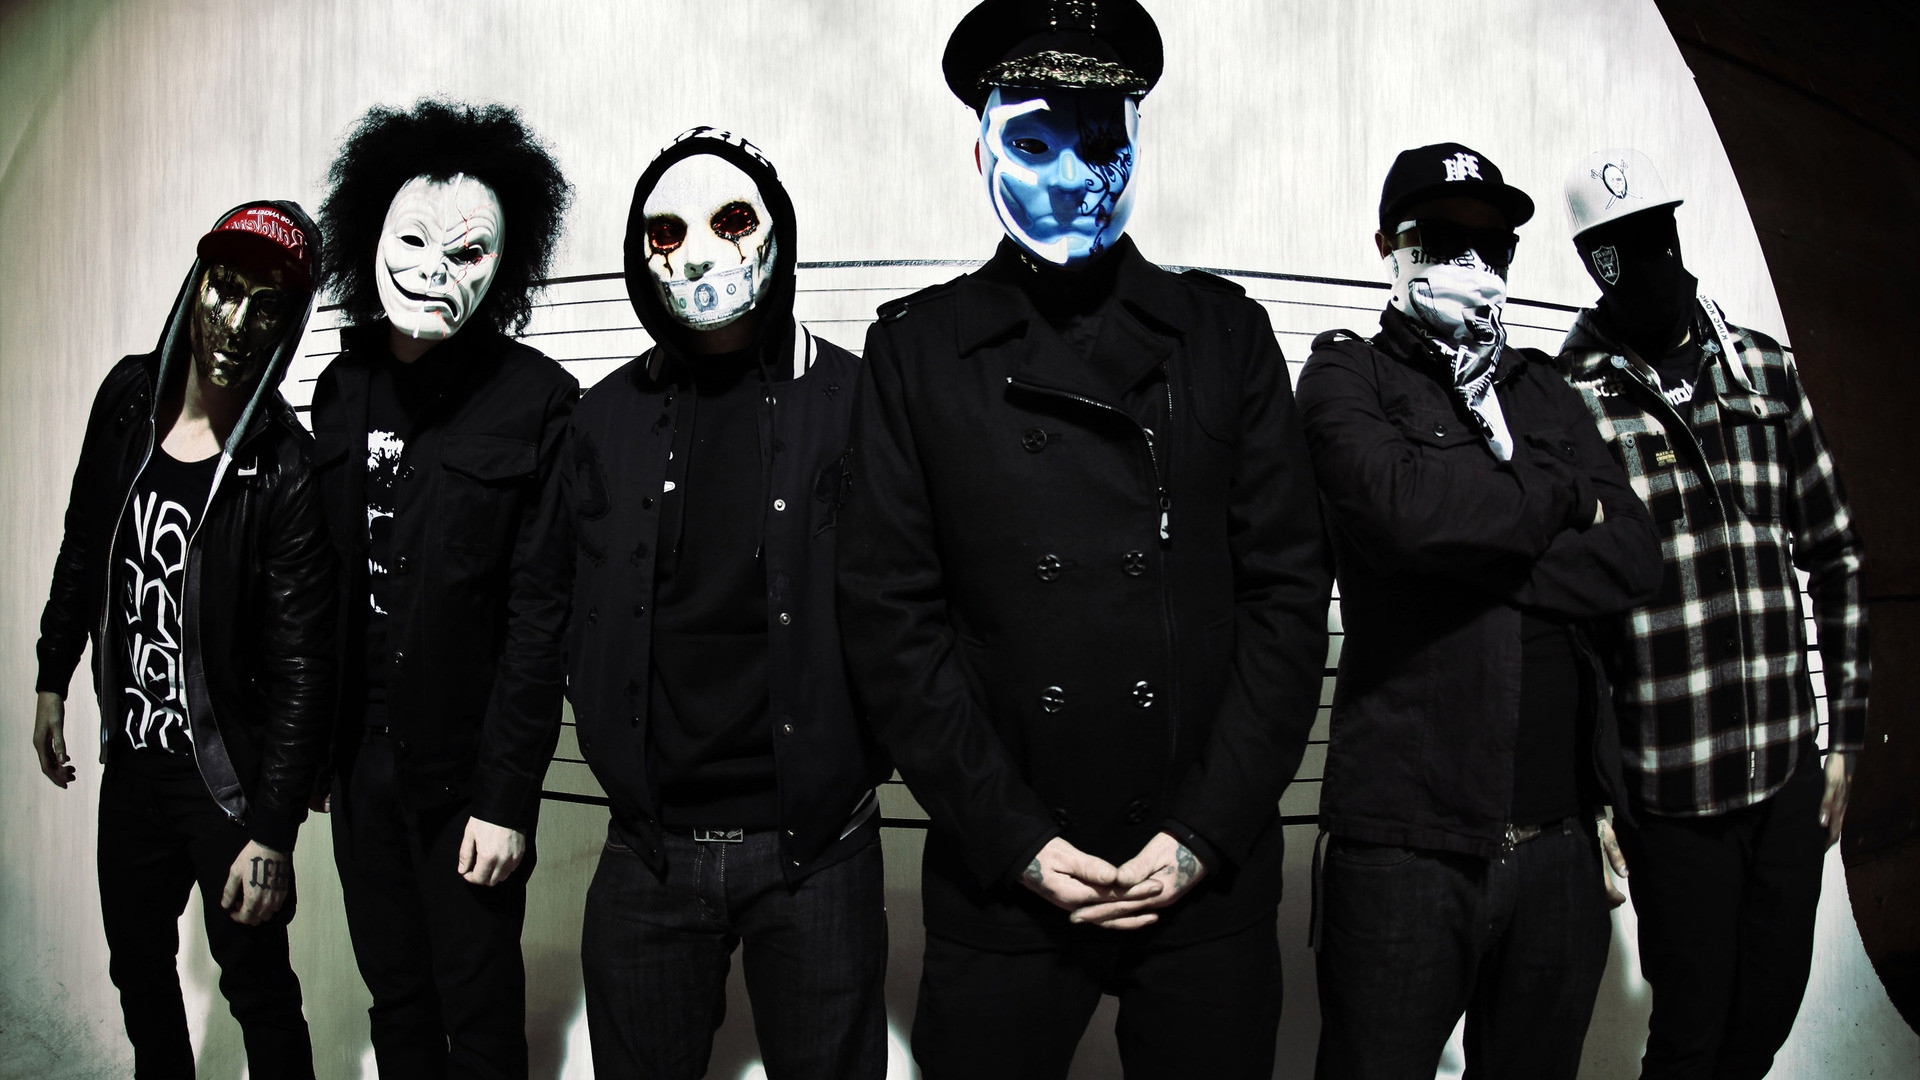 1920x1080 Hollywood Undead Wallpaper